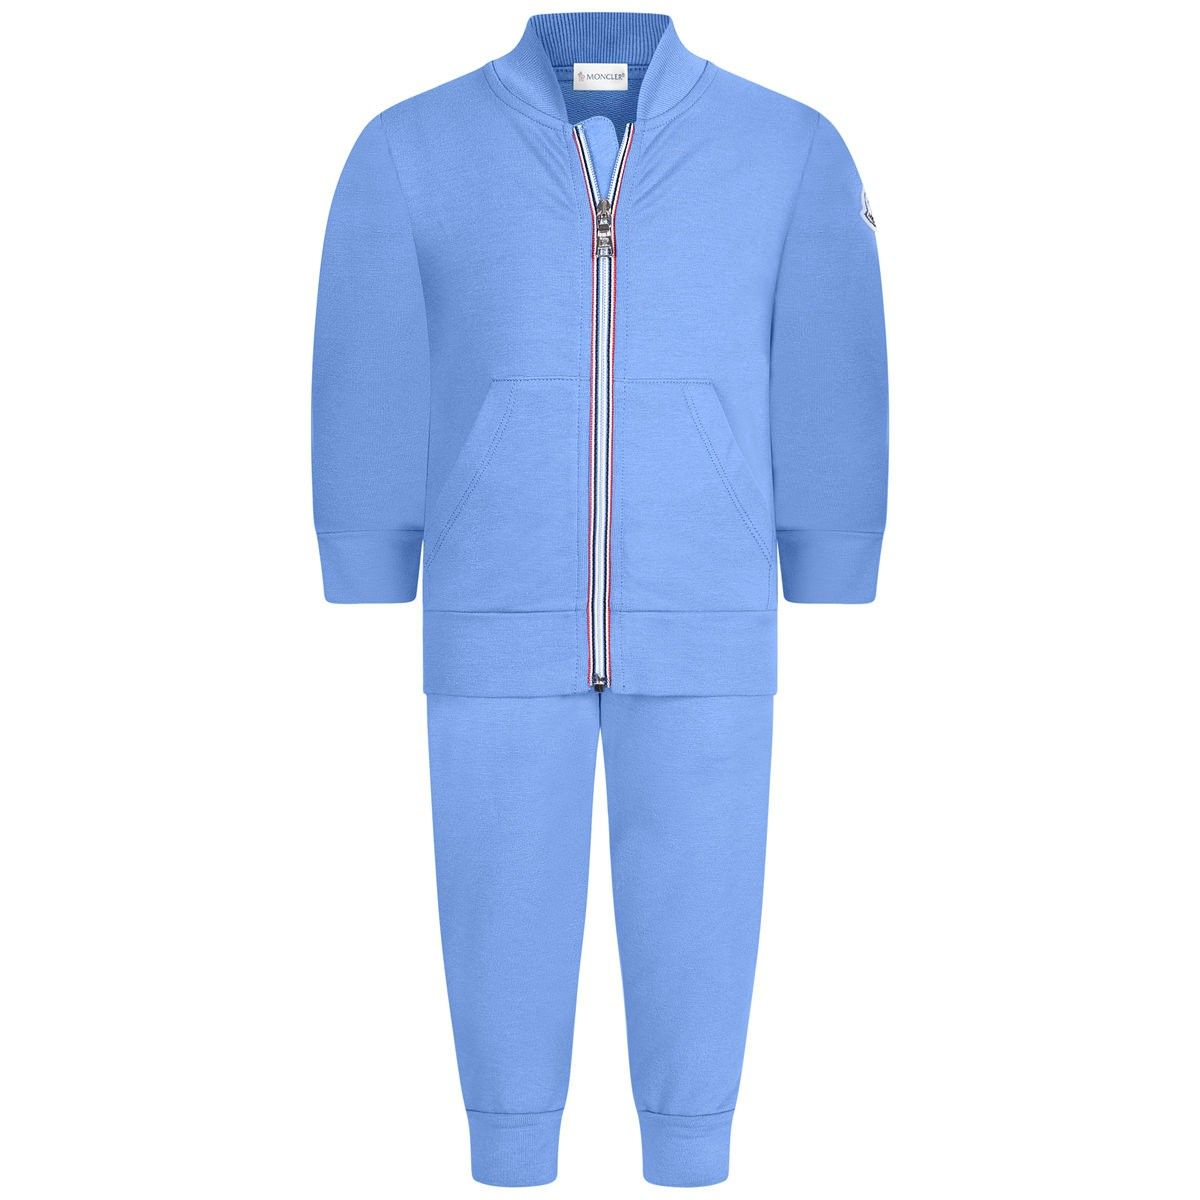 63fa42b96 Moncler Baby Boys Blue Cotton Tracksuit